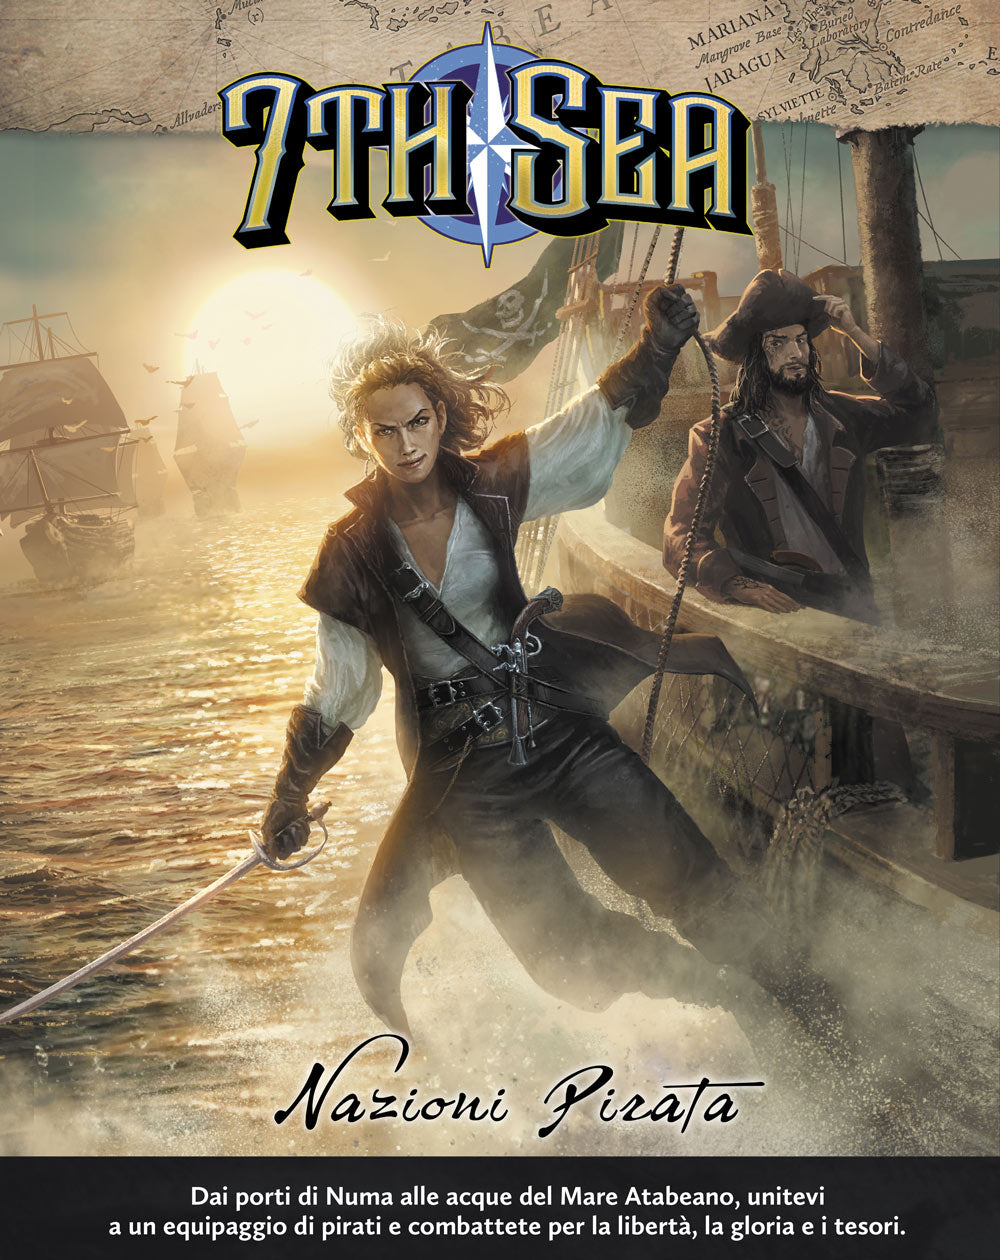 7th Sea Nazioni Pirata-STRATELIBRI- nuvolosofumetti.